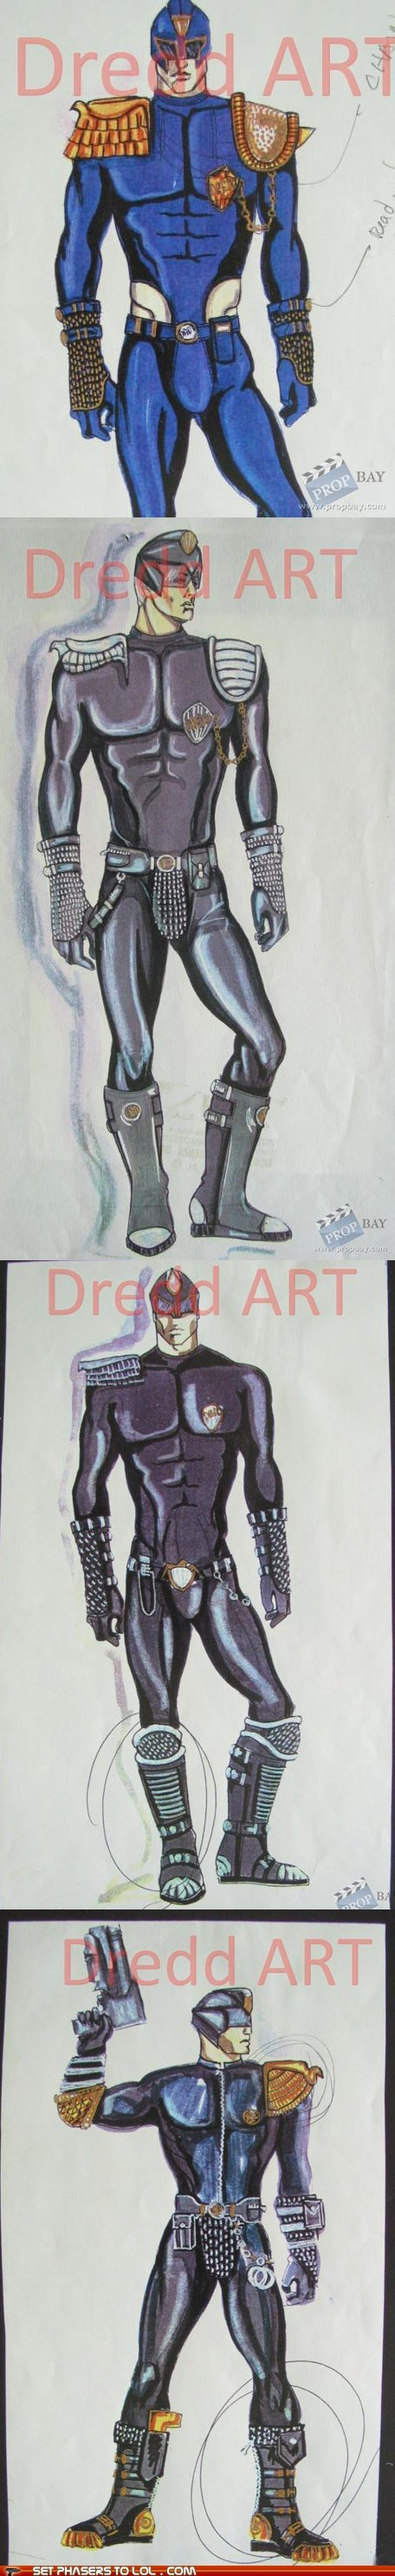 1995,concept art,costume,judge dredd,Movie,Sylvester Stalone